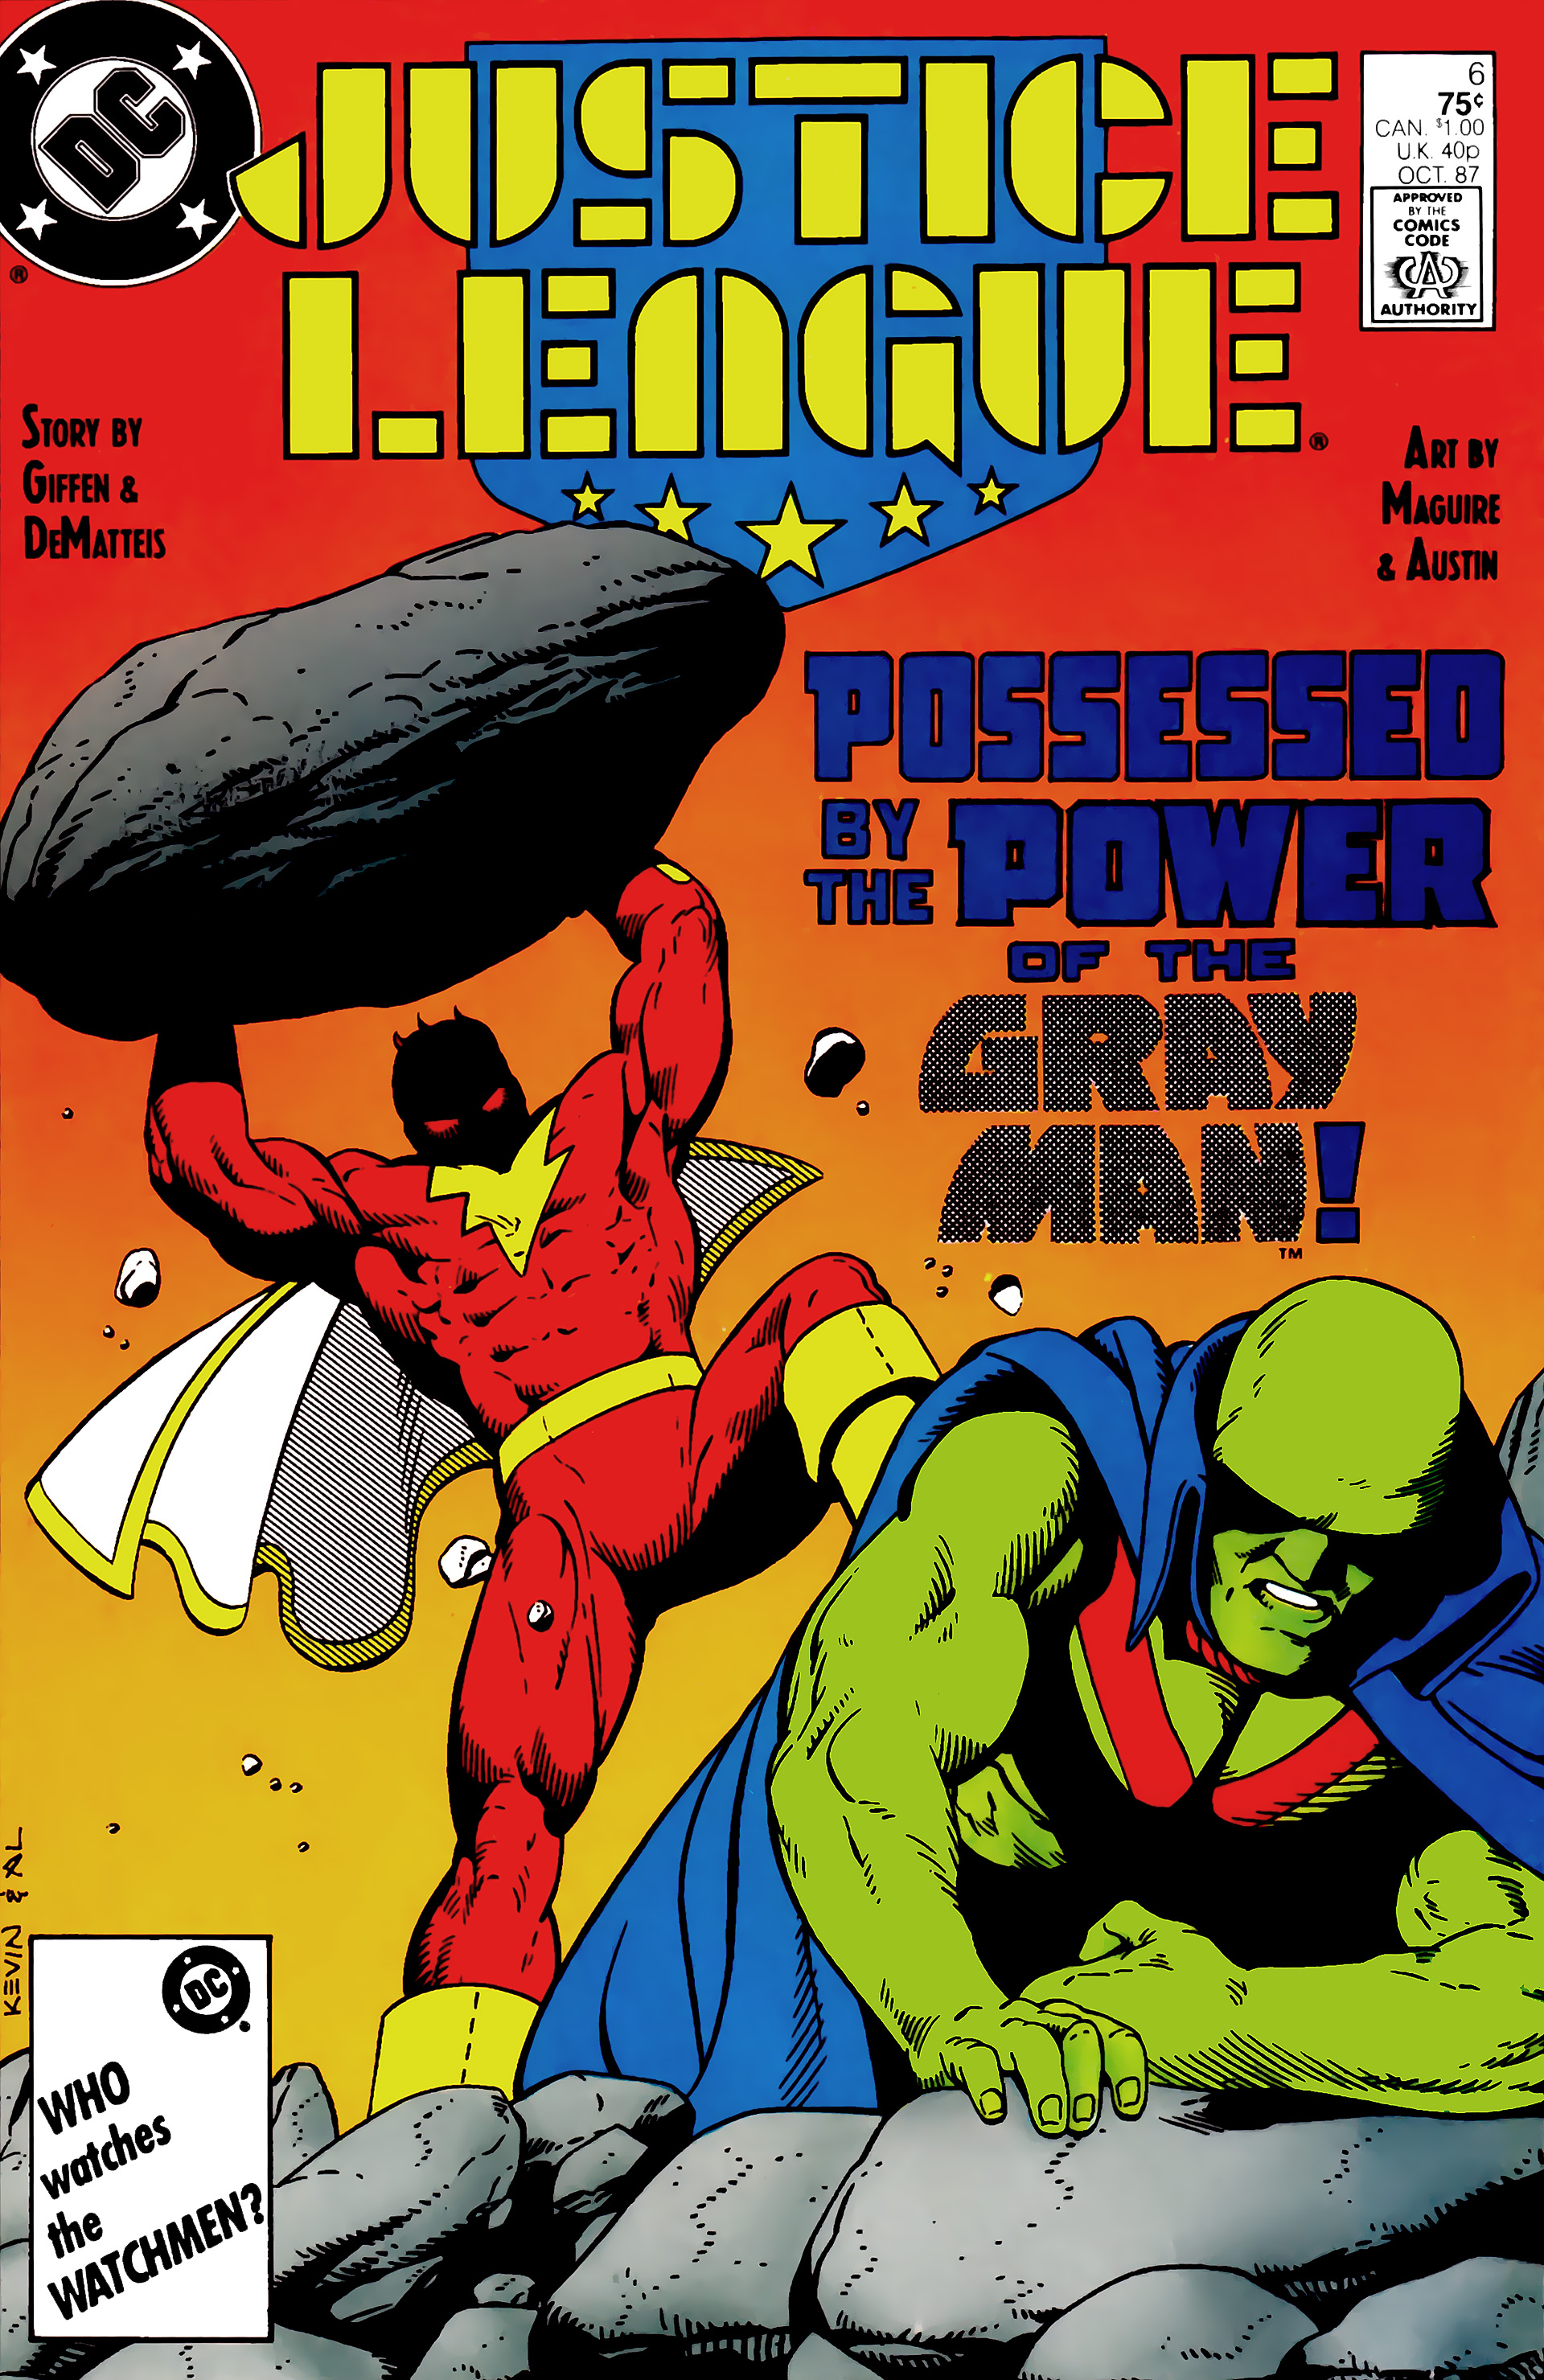 Read online Justice League (1987) comic -  Issue #6 - 1